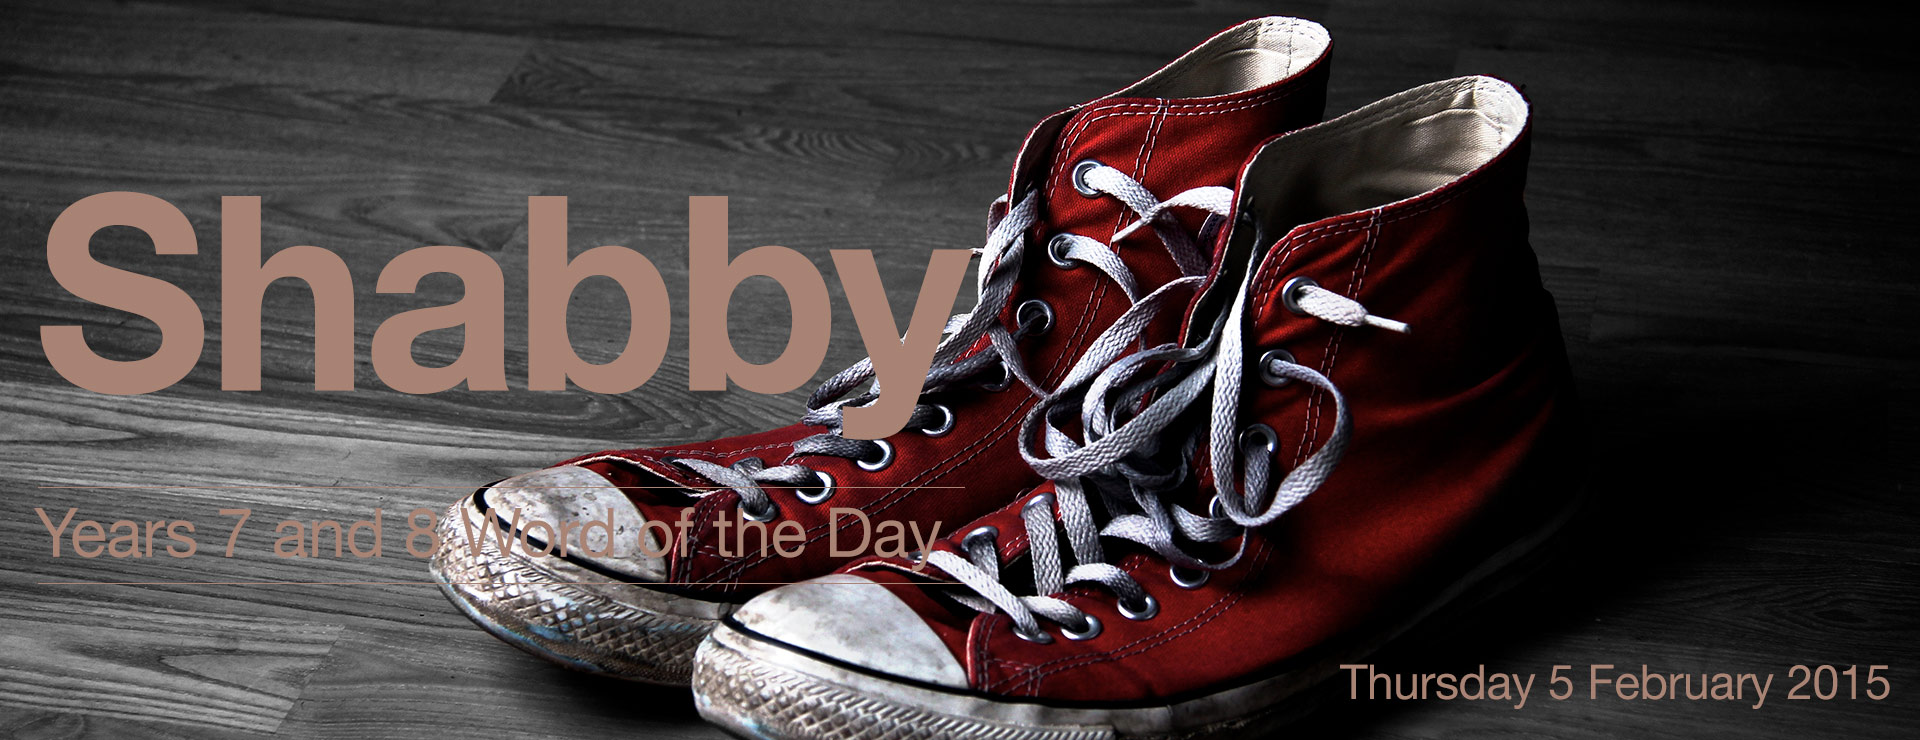 Word-of-the-Day-92.jpg